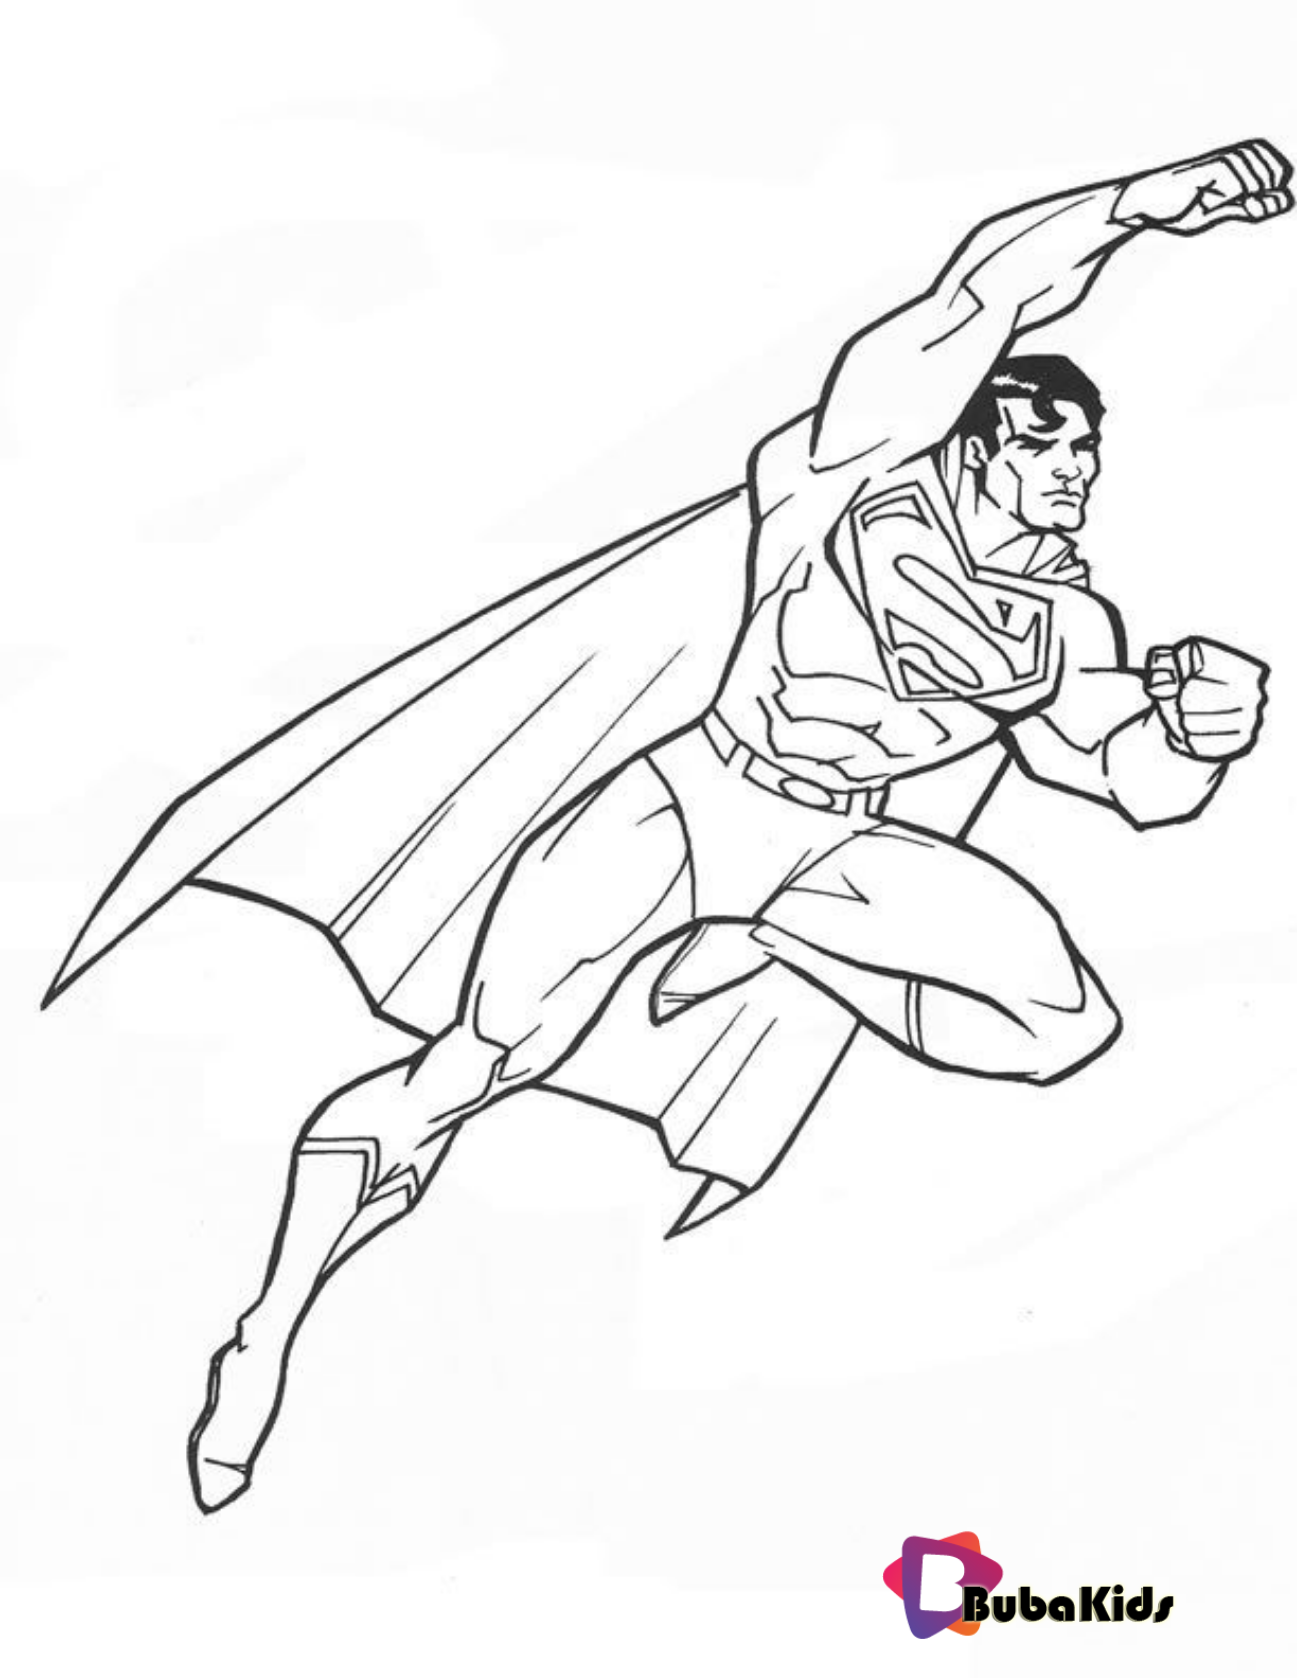 Superman Printable Coloring Book Pages Book Coloring Coloring Sheet Pages Superhero Superma Cartoon Coloring Pages Printable Coloring Book Coloring Books